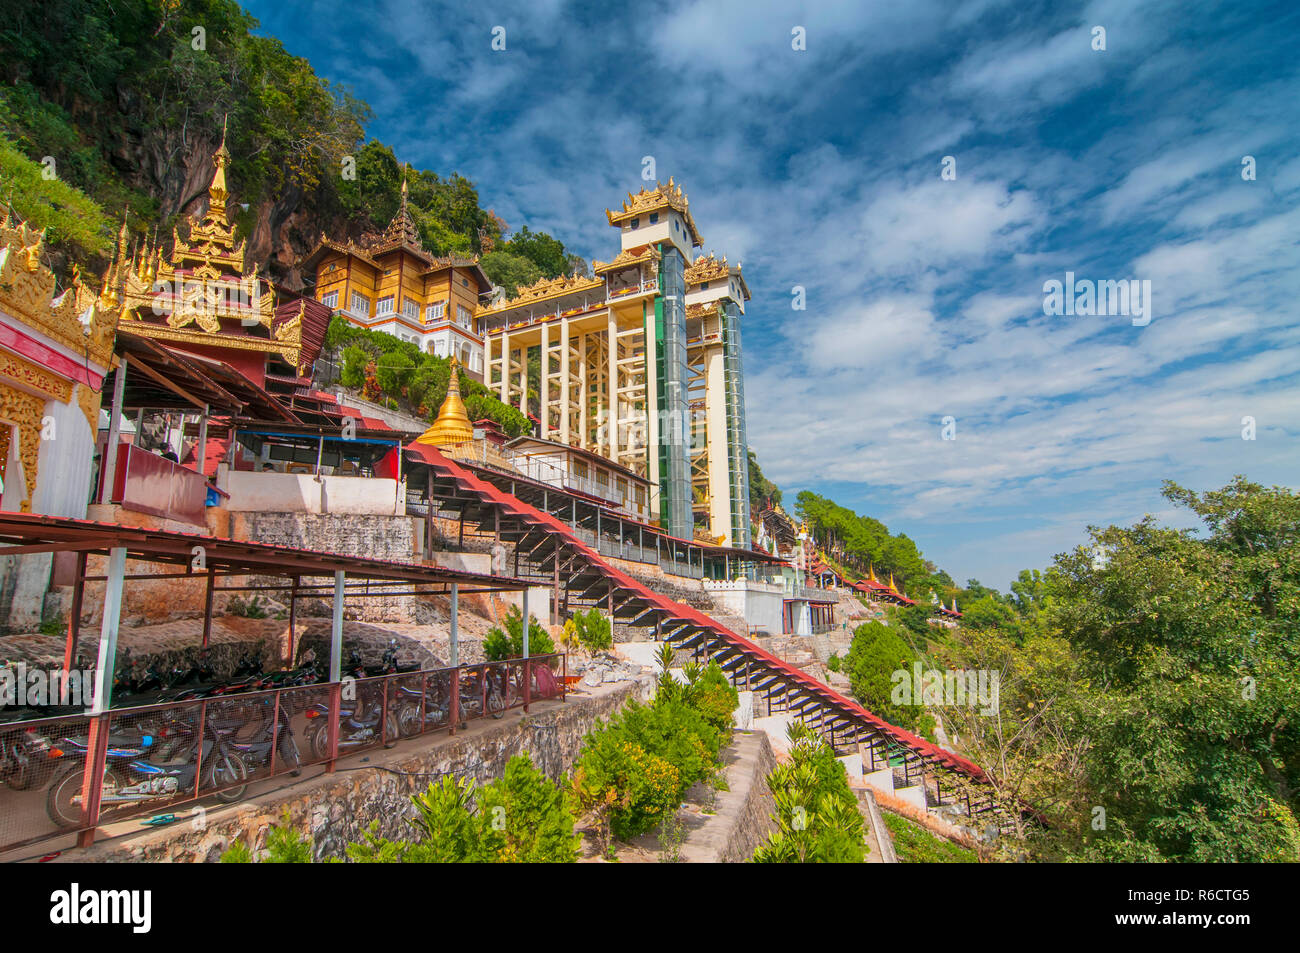 Path To The Pindaya Caves, Buddhist Shrine Where Thousands Of Buddha Images Have Been Consecrated For Worship Over The Centuries - Stock Image